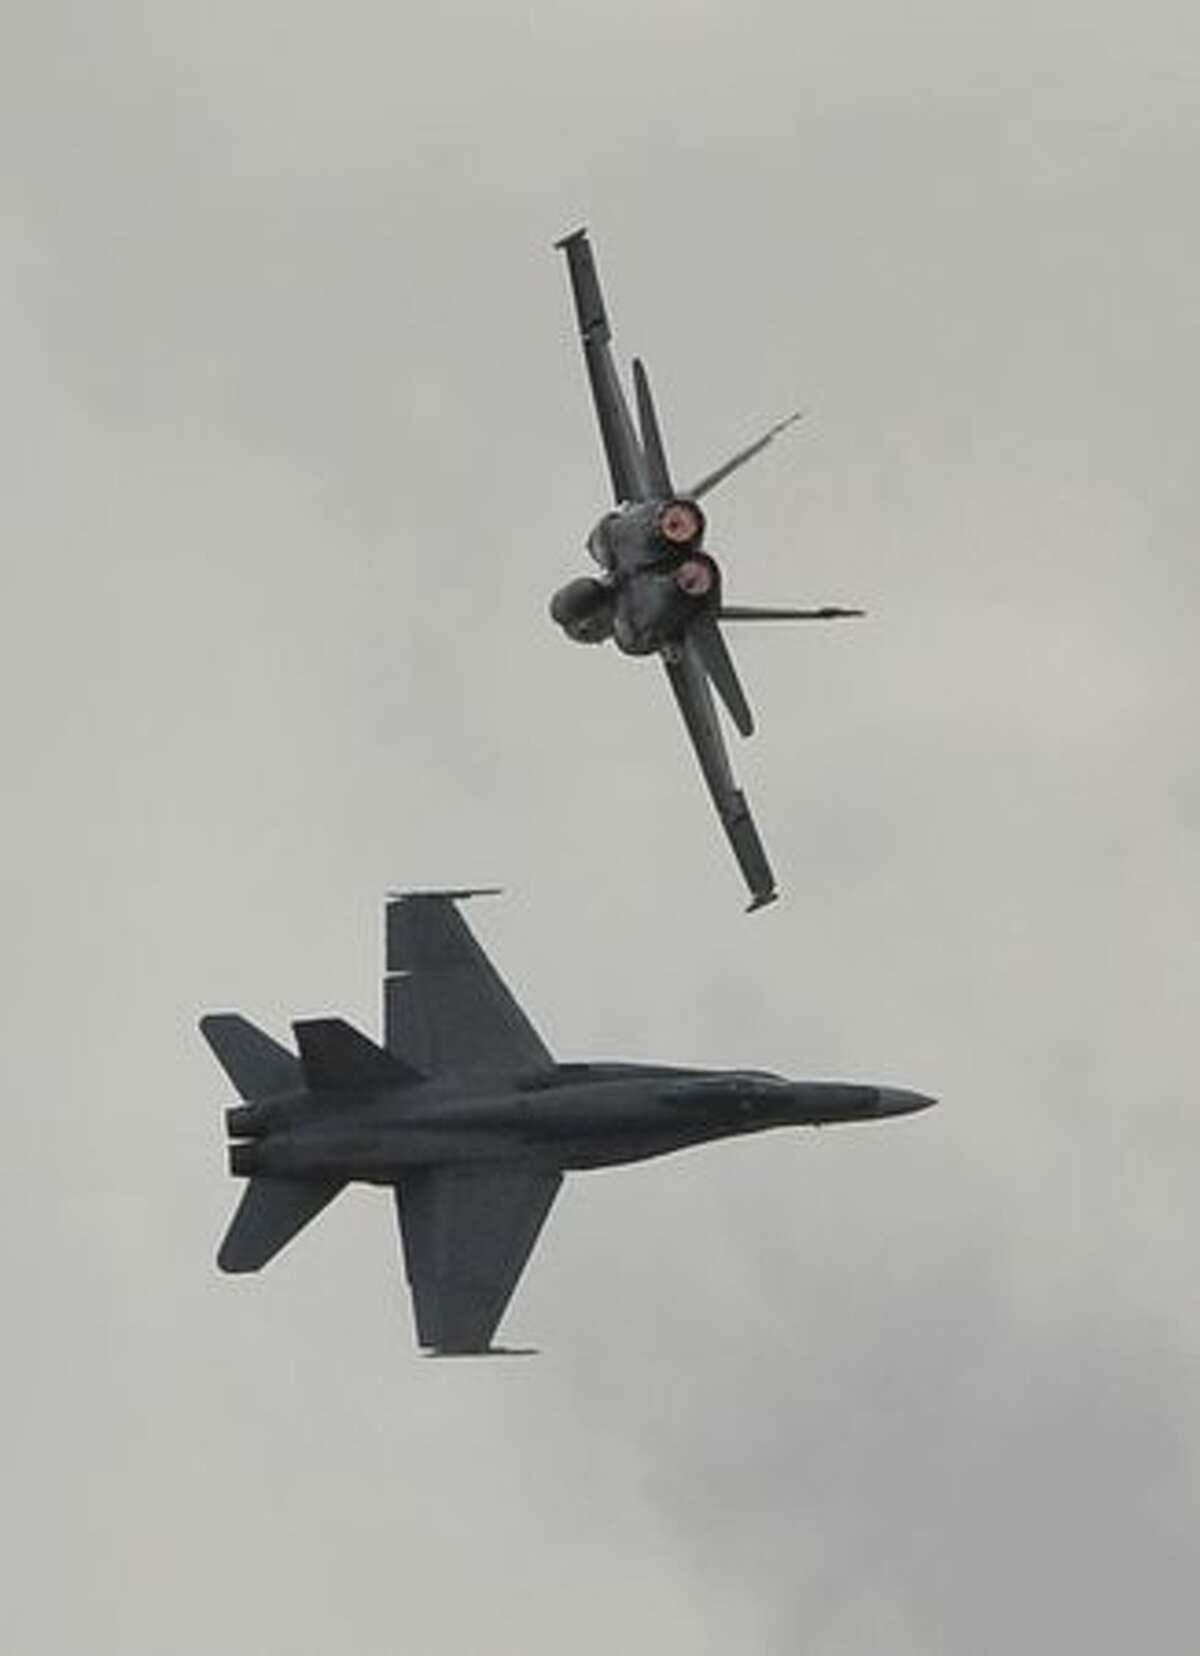 Royal Australian Air Force F-18s perform on the opening day of the Australian International Airshow and Aerospace and Defence Expo in Melbourne.